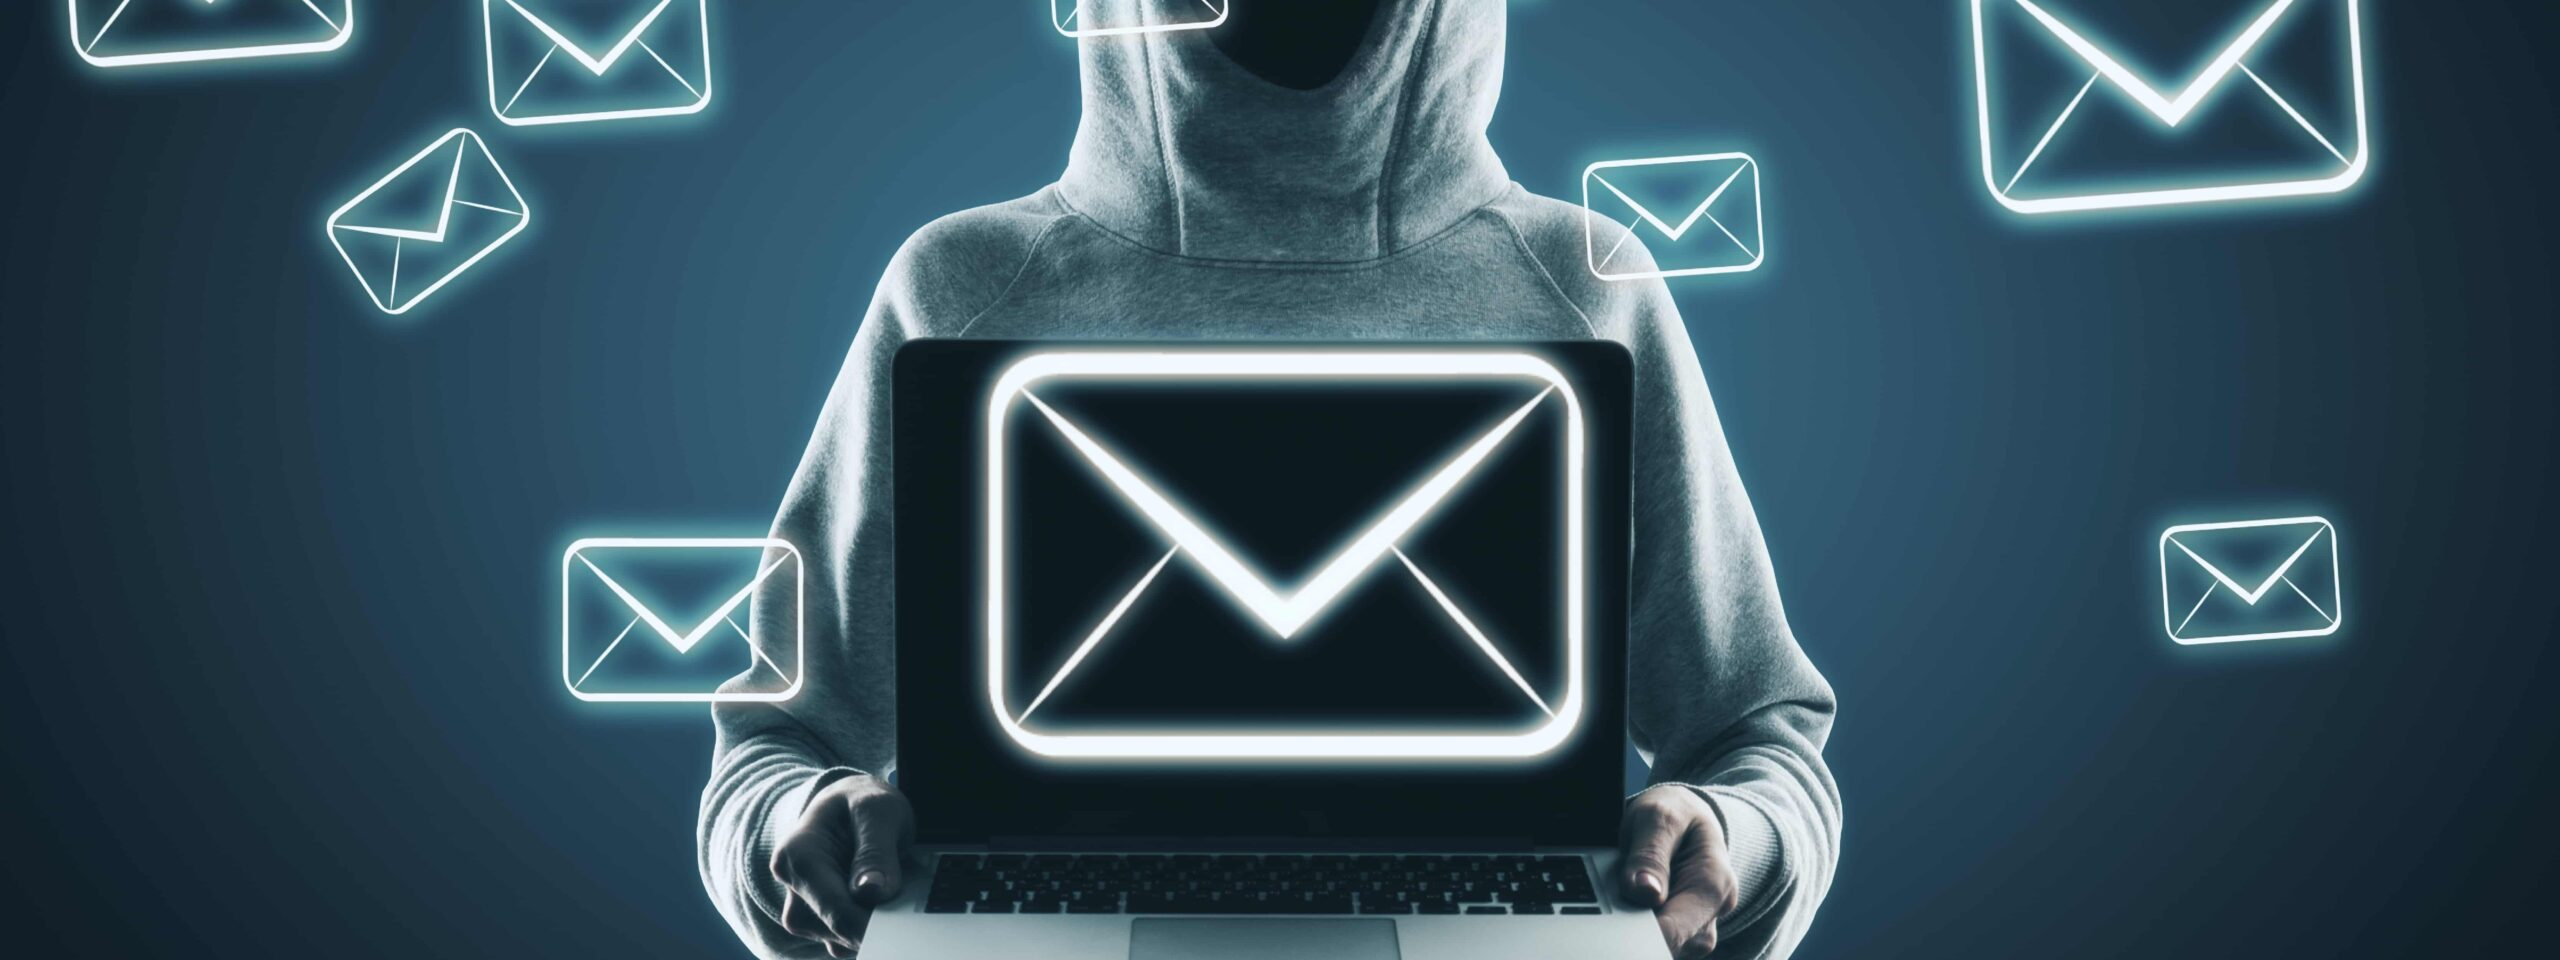 How to recognise a phishing email | 5 Types of Phishing Emails